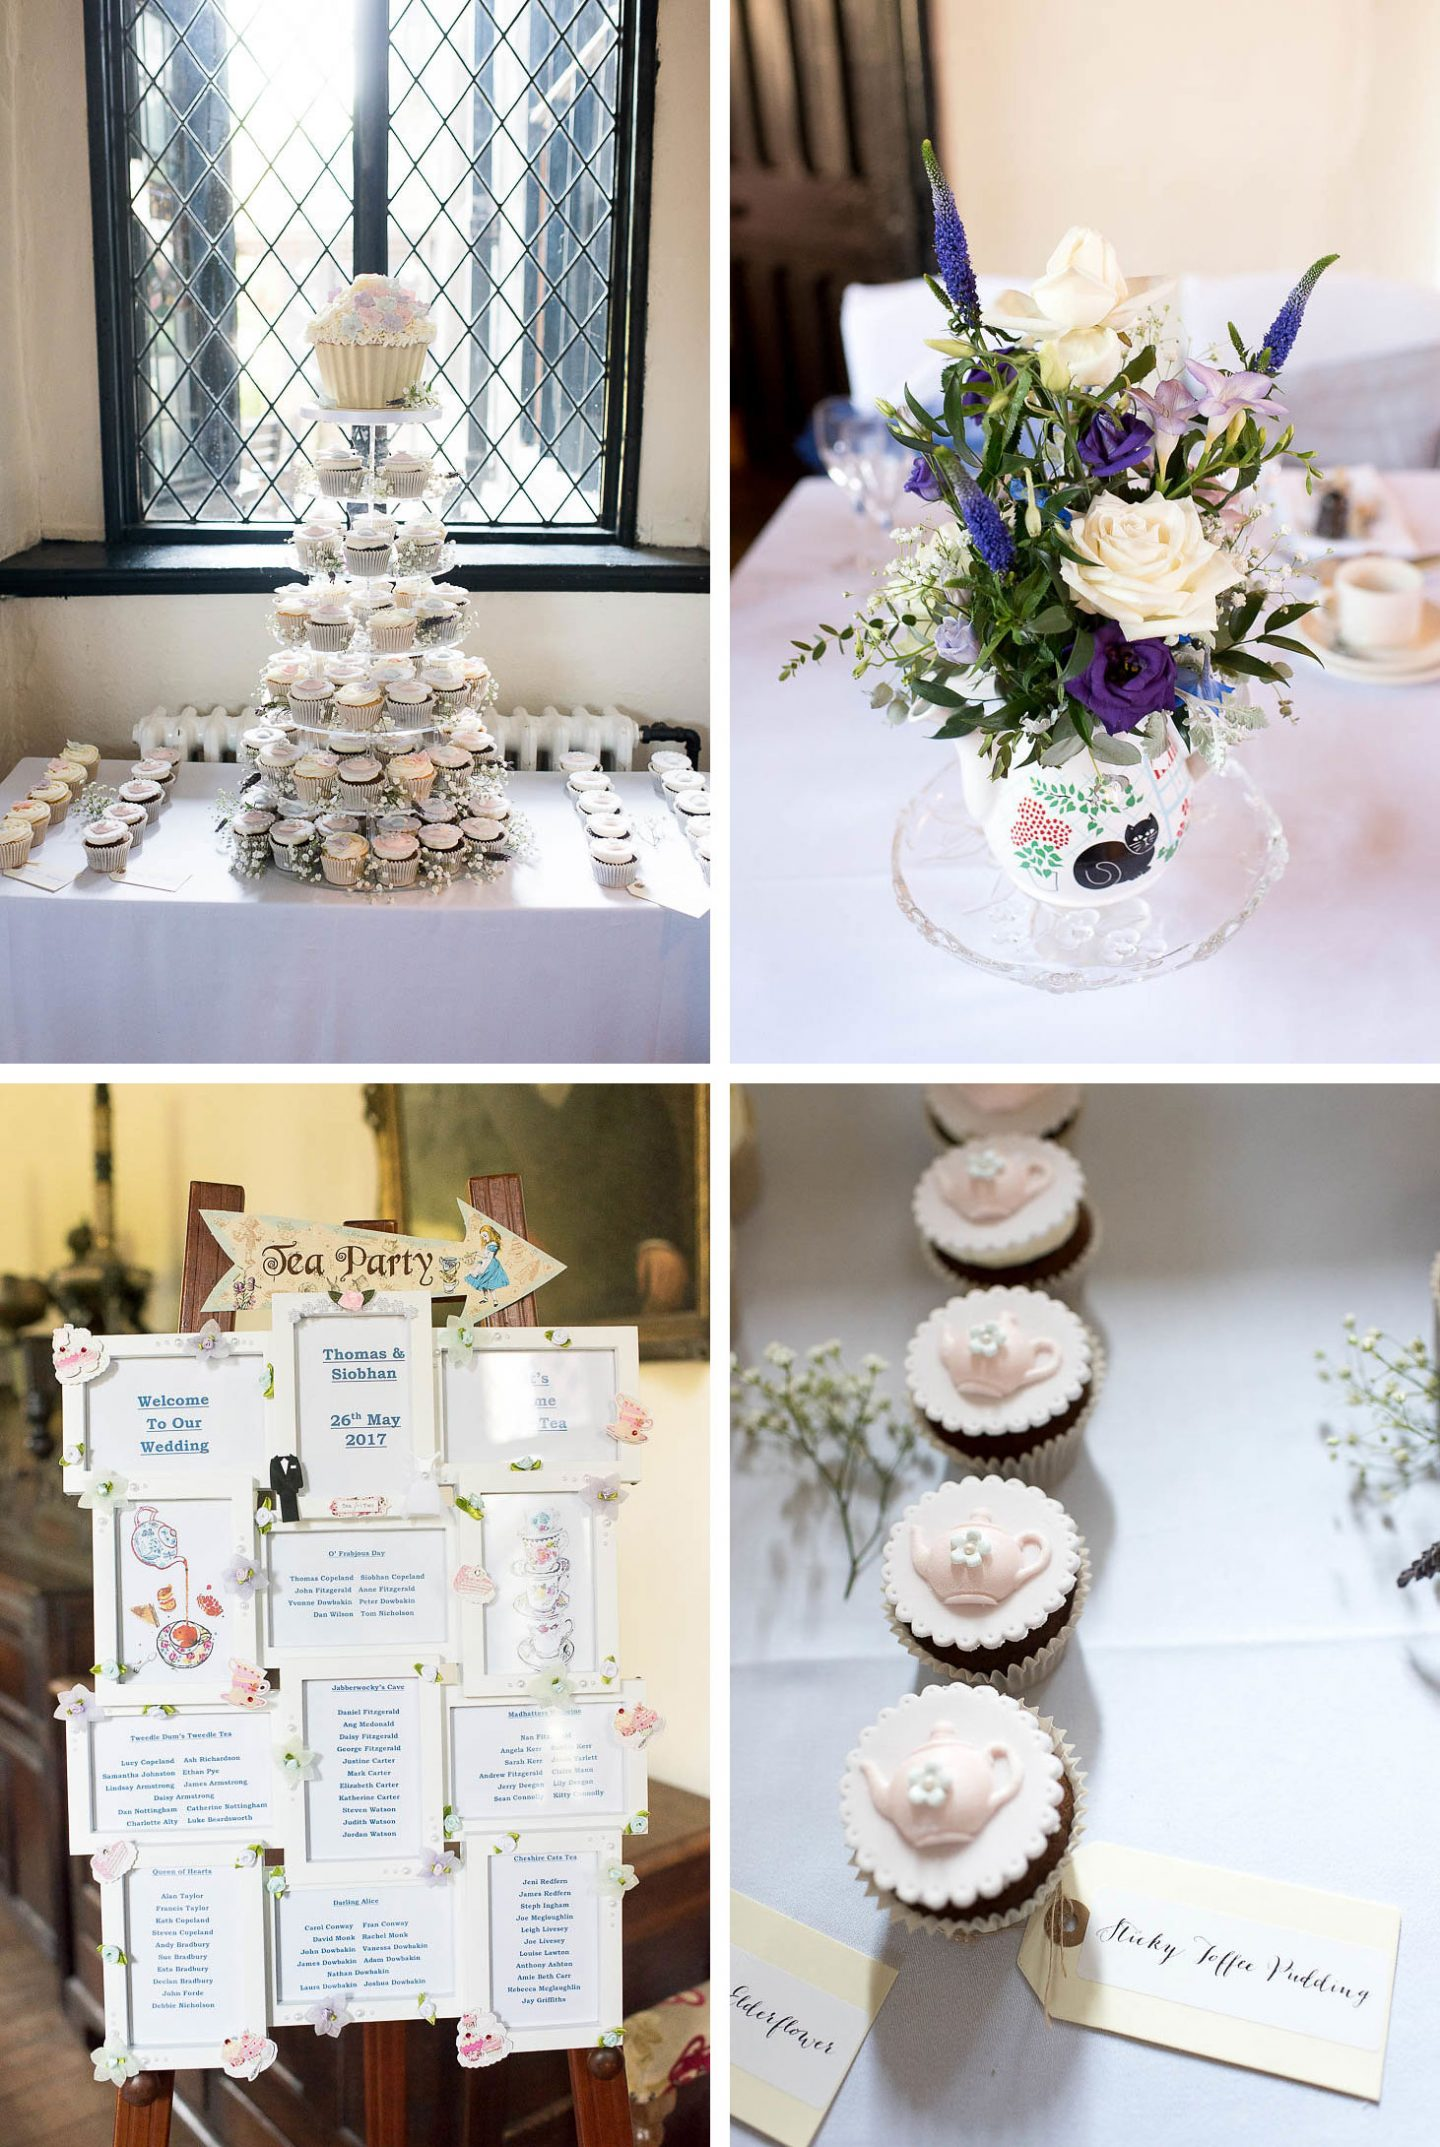 SIOBHAN & TOM\'S ALICE IN WONDERLAND THEMED WEDDING - LucieMua